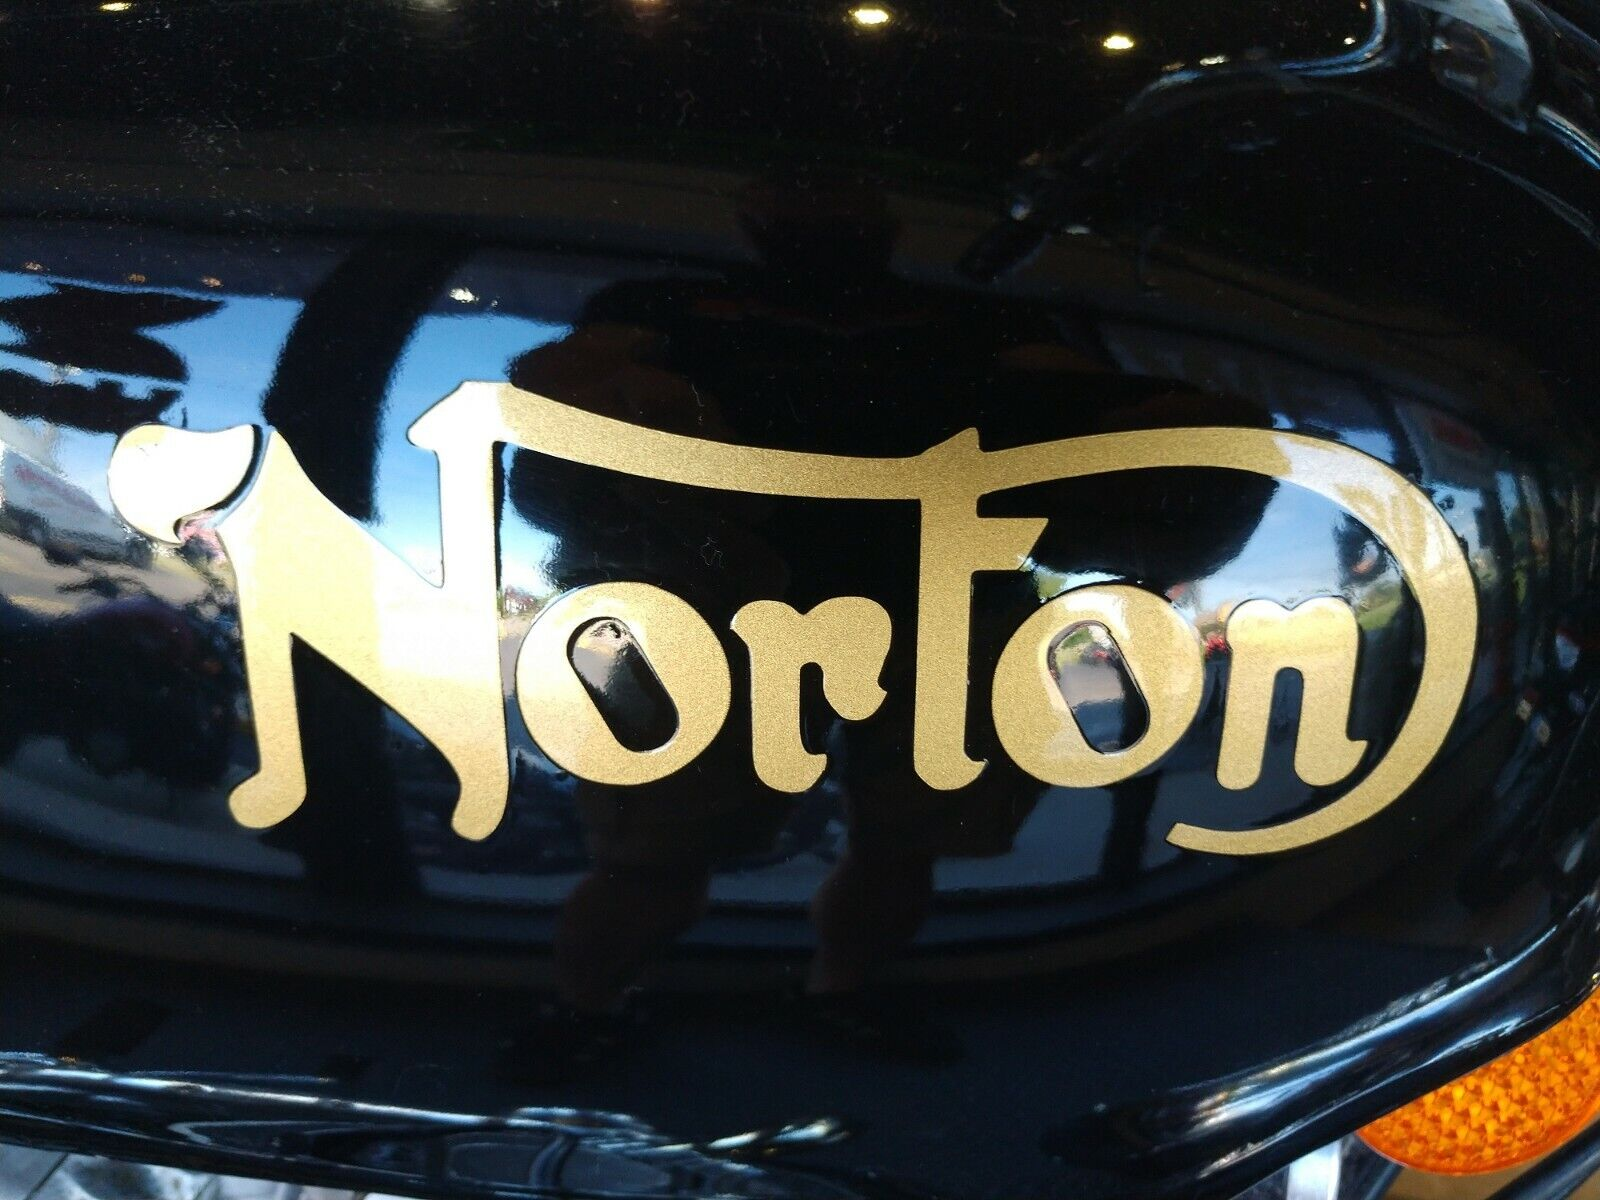 1973 NORTON 750 COMMANDO  RUNS EXCELLENT!  READY TO GO!  EXTREMELY CLEAN!